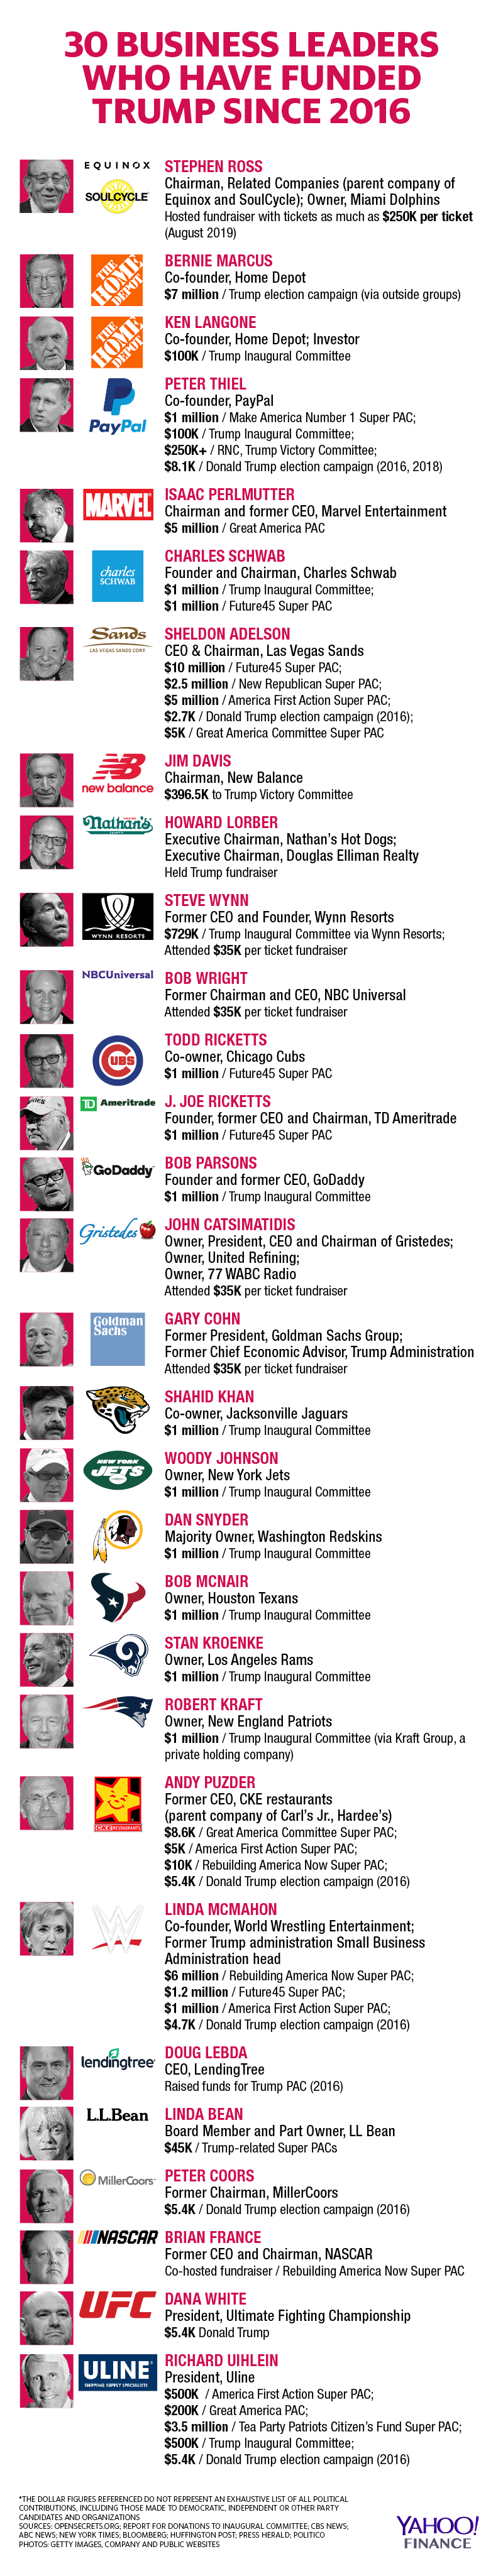 Business leaders who have funded Trump